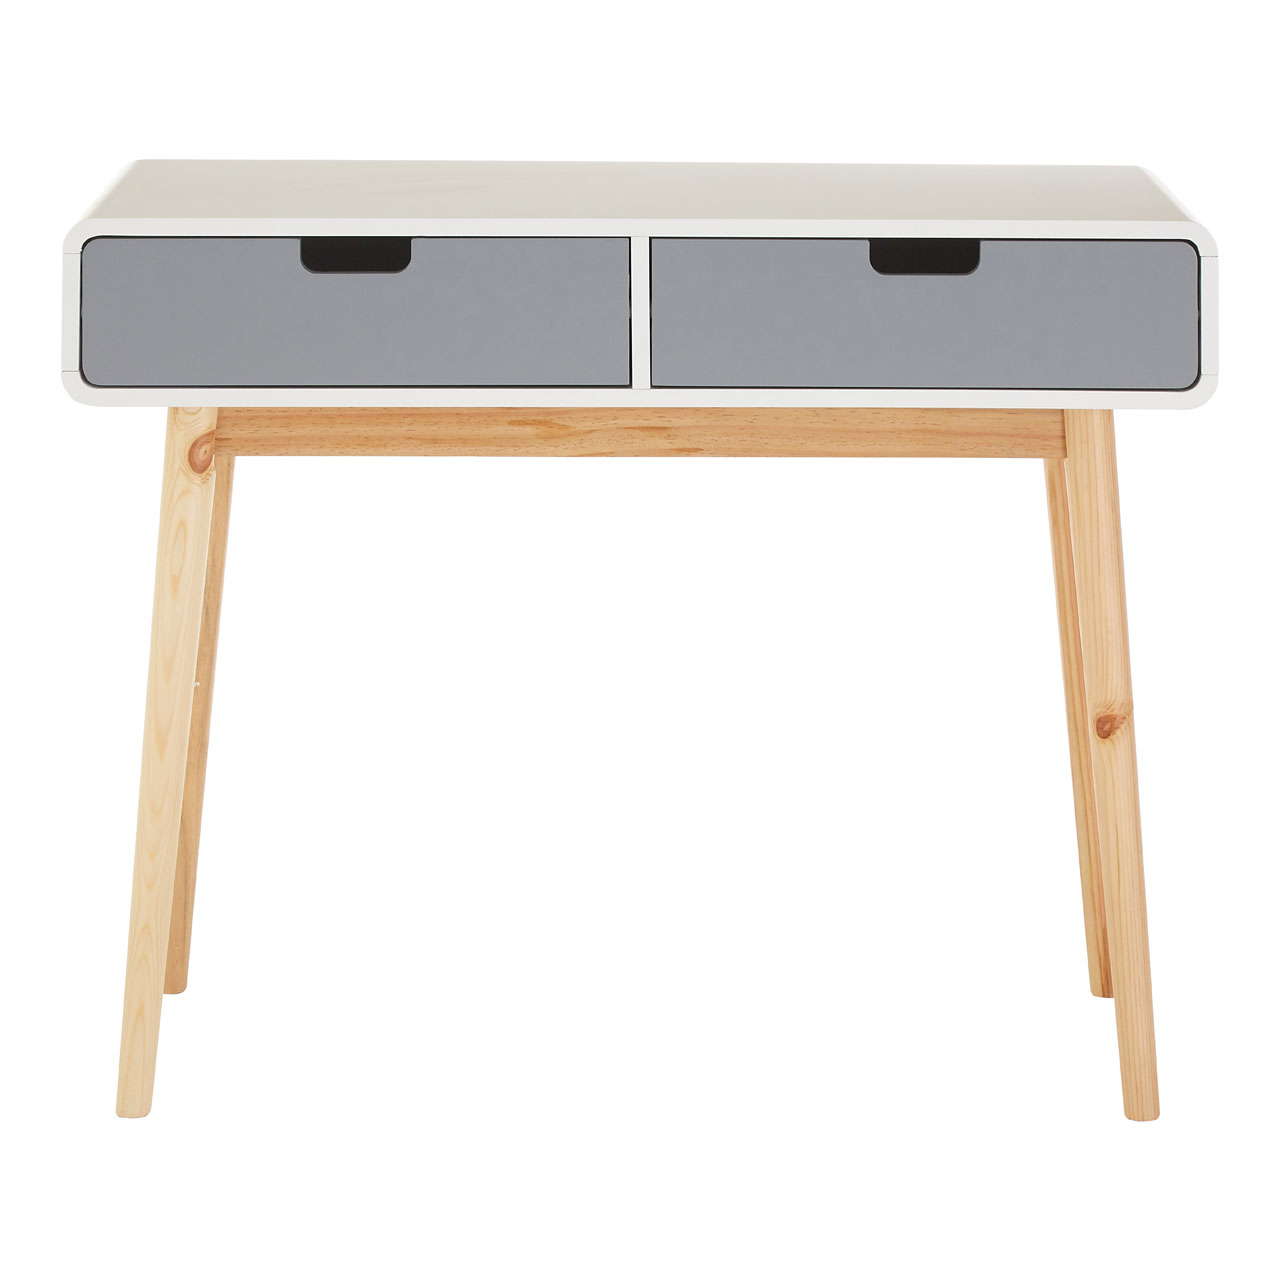 Milo Console Table White Grey Pine Wood Legs Bedroom Dressing Furniture